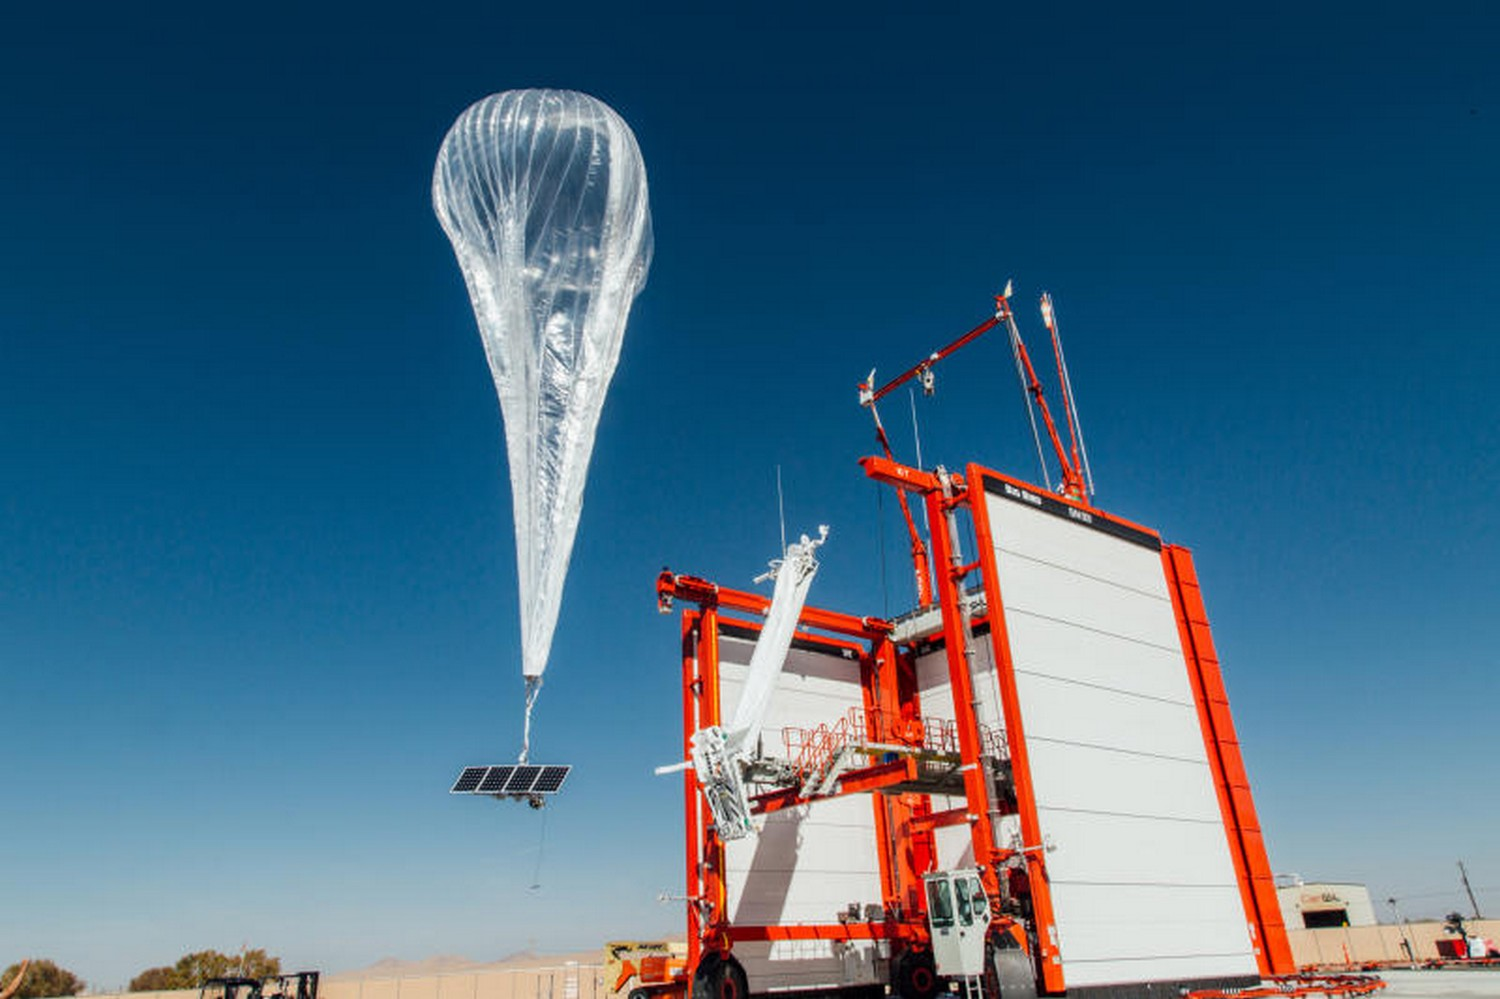 Alphabet shuts down project to beam internet from high-altitude balloons